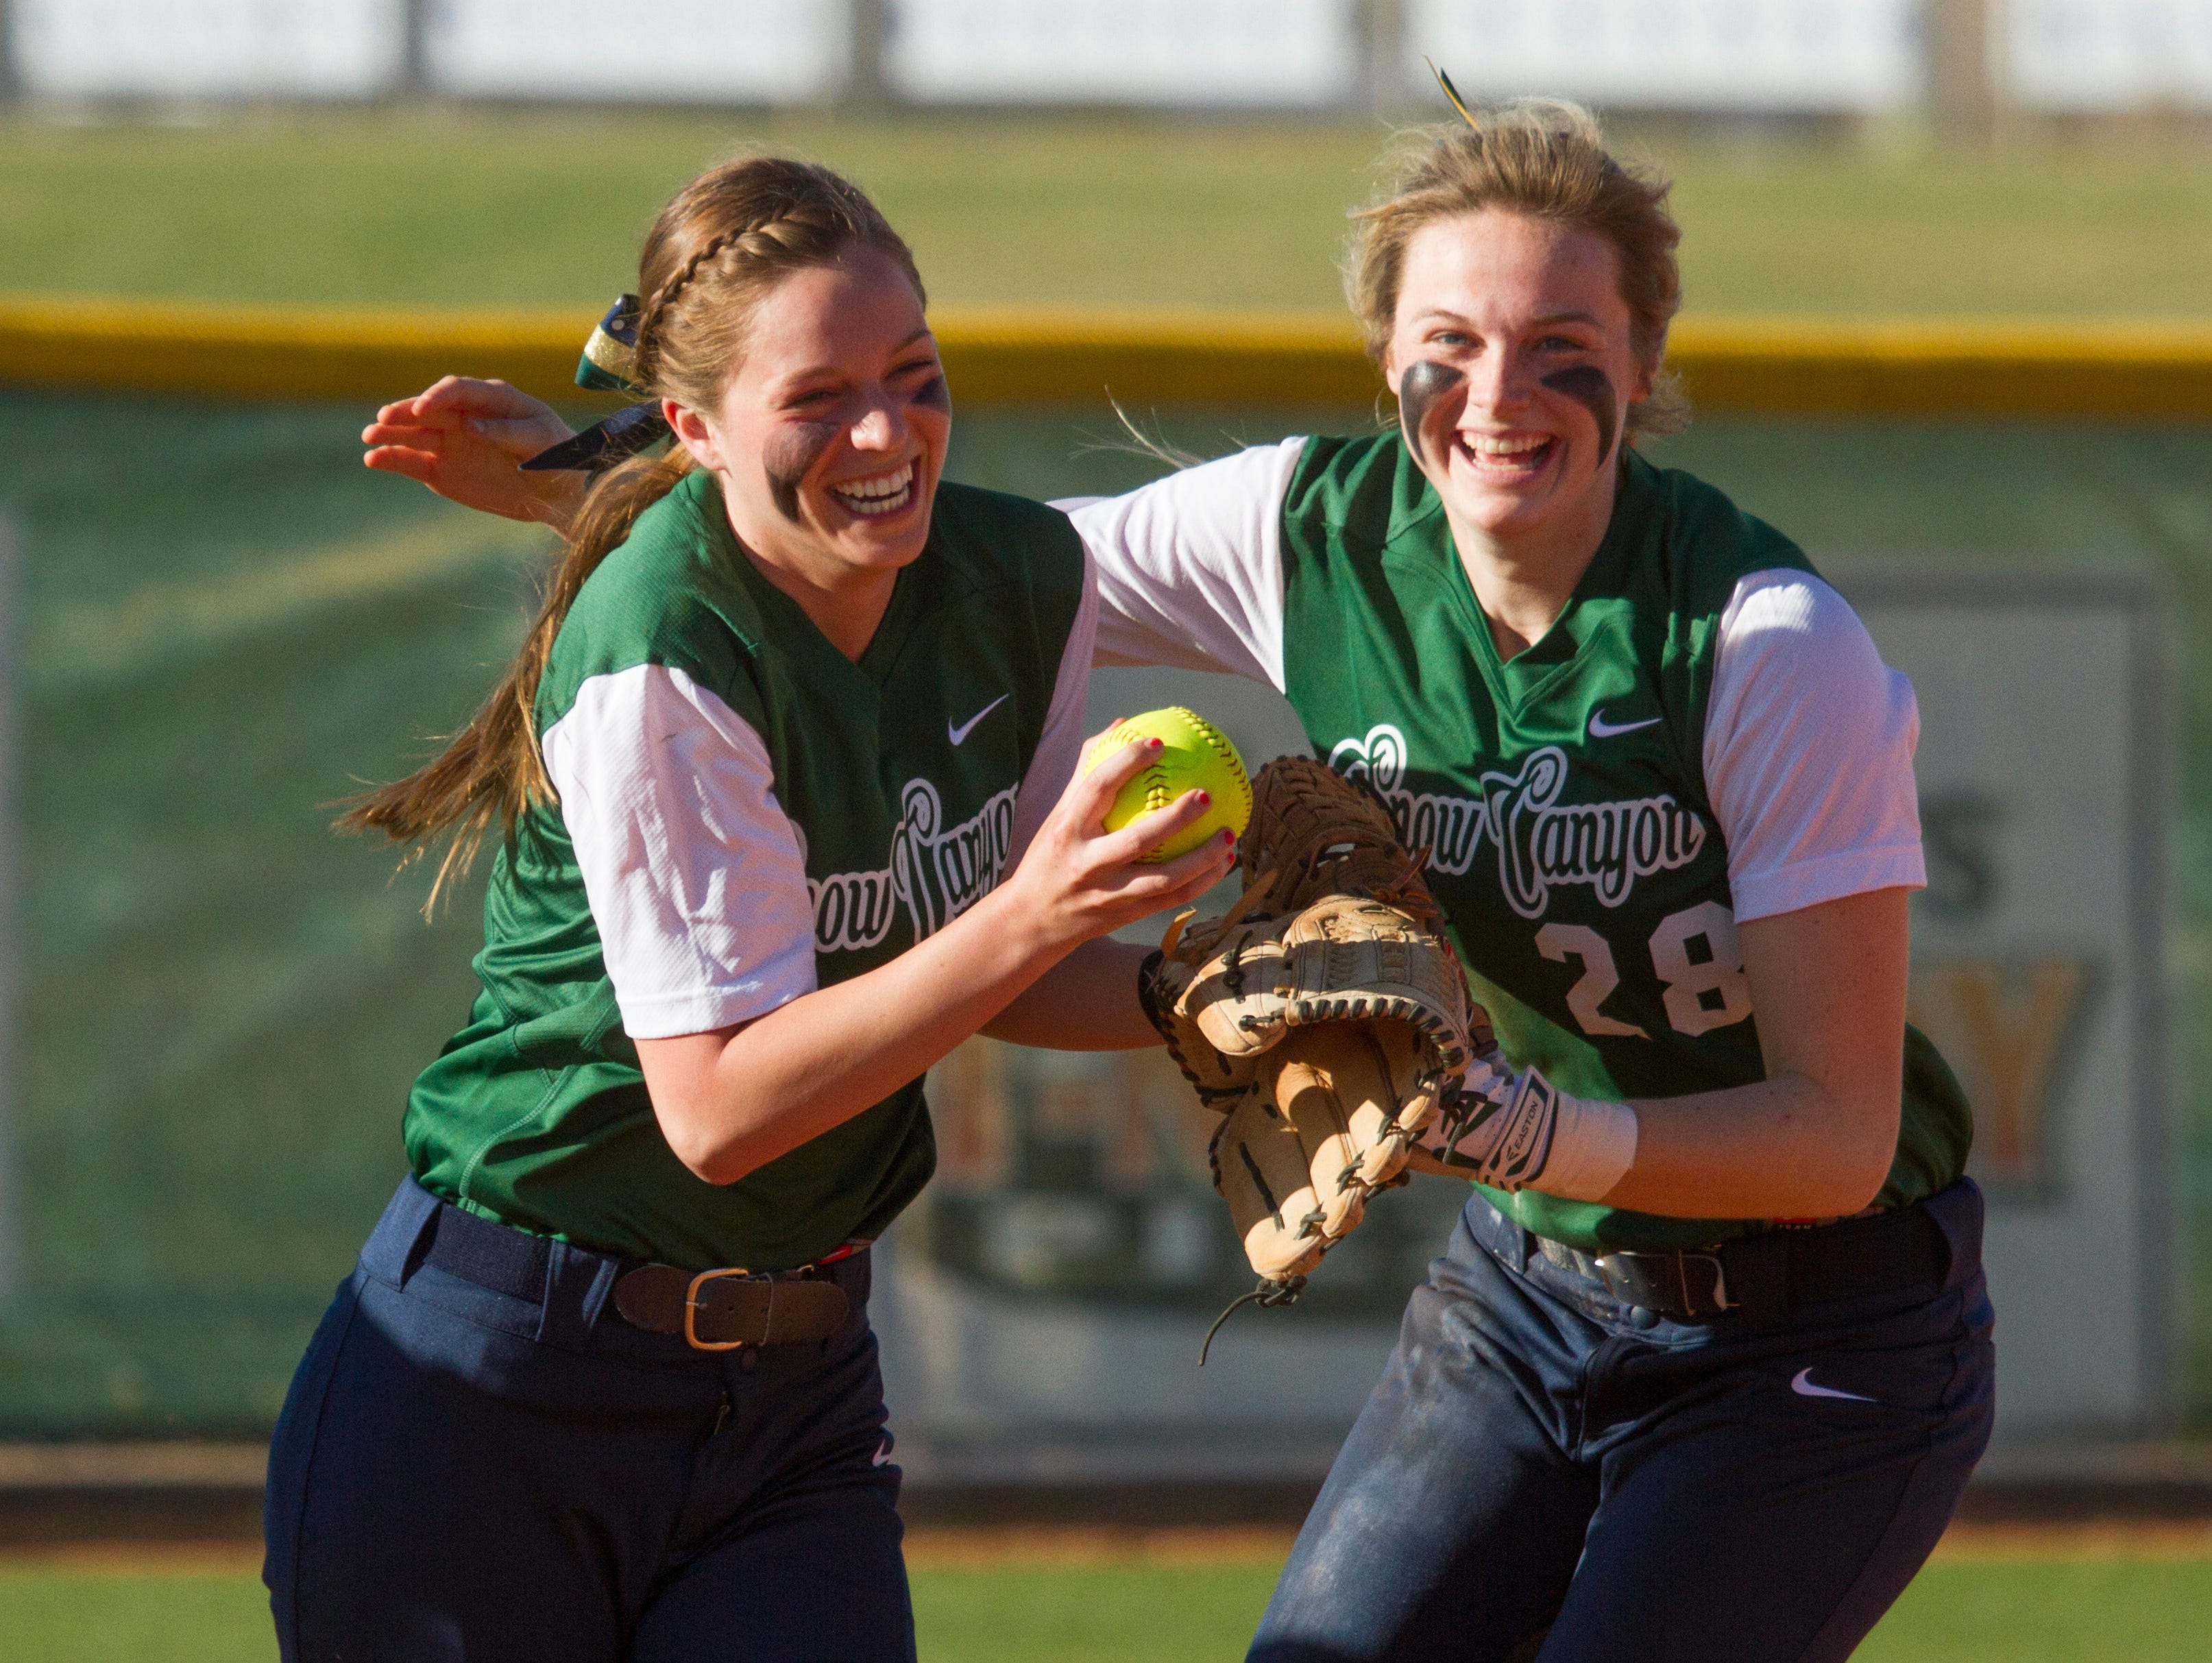 Snow Canyon left fielder Kaitlyn Flowers celebrates with teammates after making a catch for an out against Sky View Thursday, March 10, 2016.